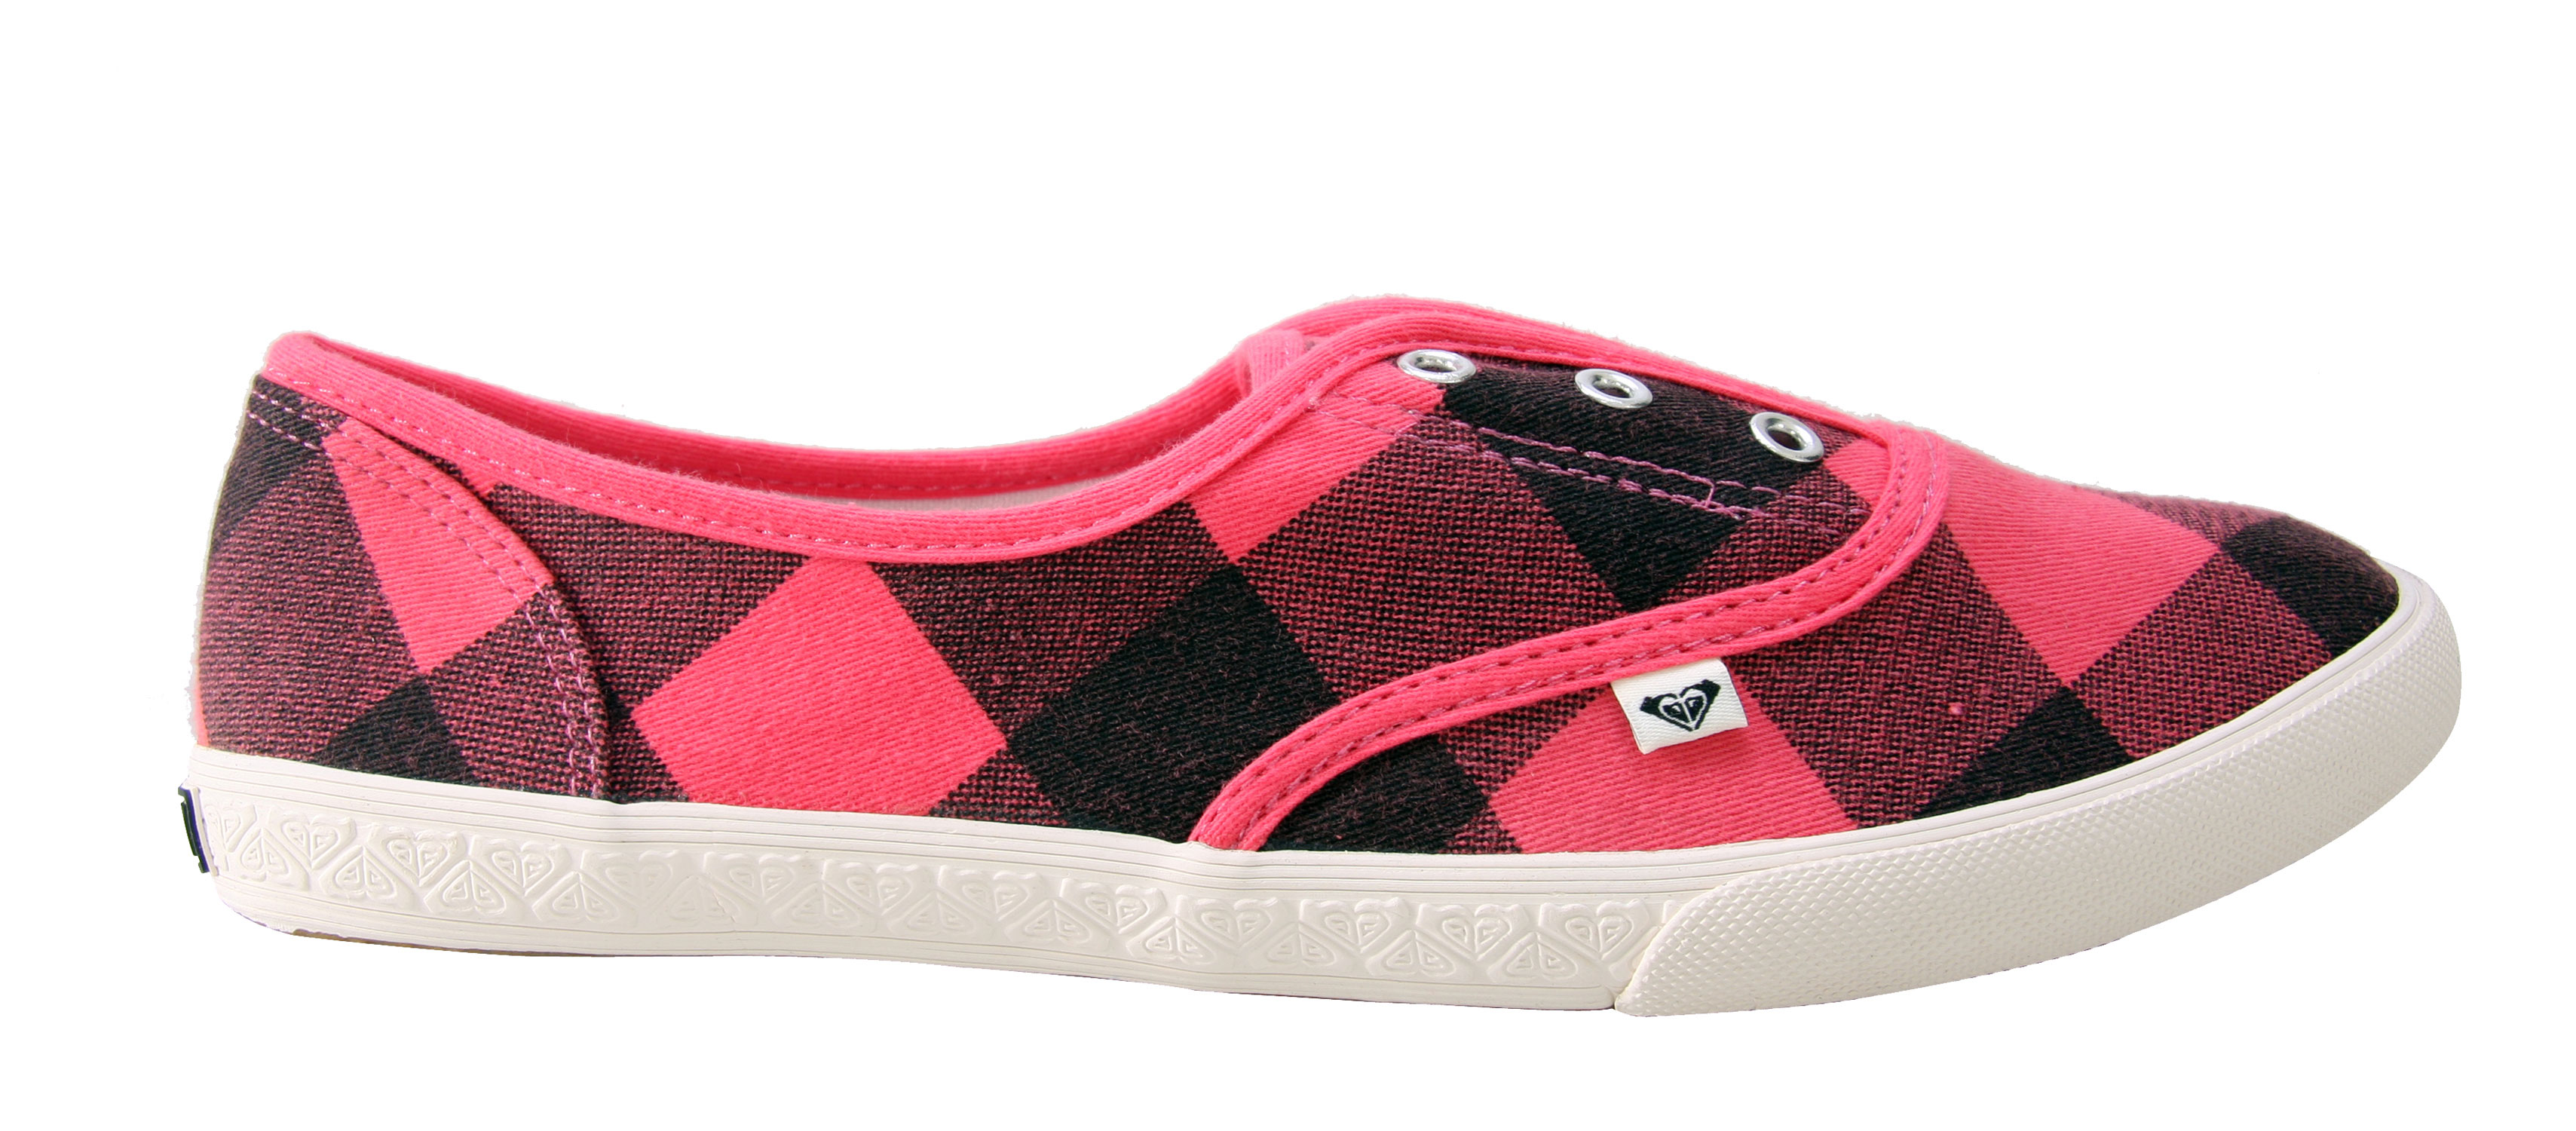 Surf Look casual and comfortable with the Roxy Manchester Shoes. Super lightweight, you can wear these all day without feeling tired. It features a washed canvas, denim material upper. Its rubber soles are great for high traction. With its plaid design, it's ultra cute, super easy to match. So, don't be without the Roxy Manchester Shoes this season and treat yourself to these fabulous shoes.Key Features of The Roxy Manchester Women's Shoes: Light Weight Washed Canvas or Distressed Denim Uppers Lace Less with Elastic For Fit Logo Flag Canvas Lining and Insole Rubber Foxing and Outsole - $22.95